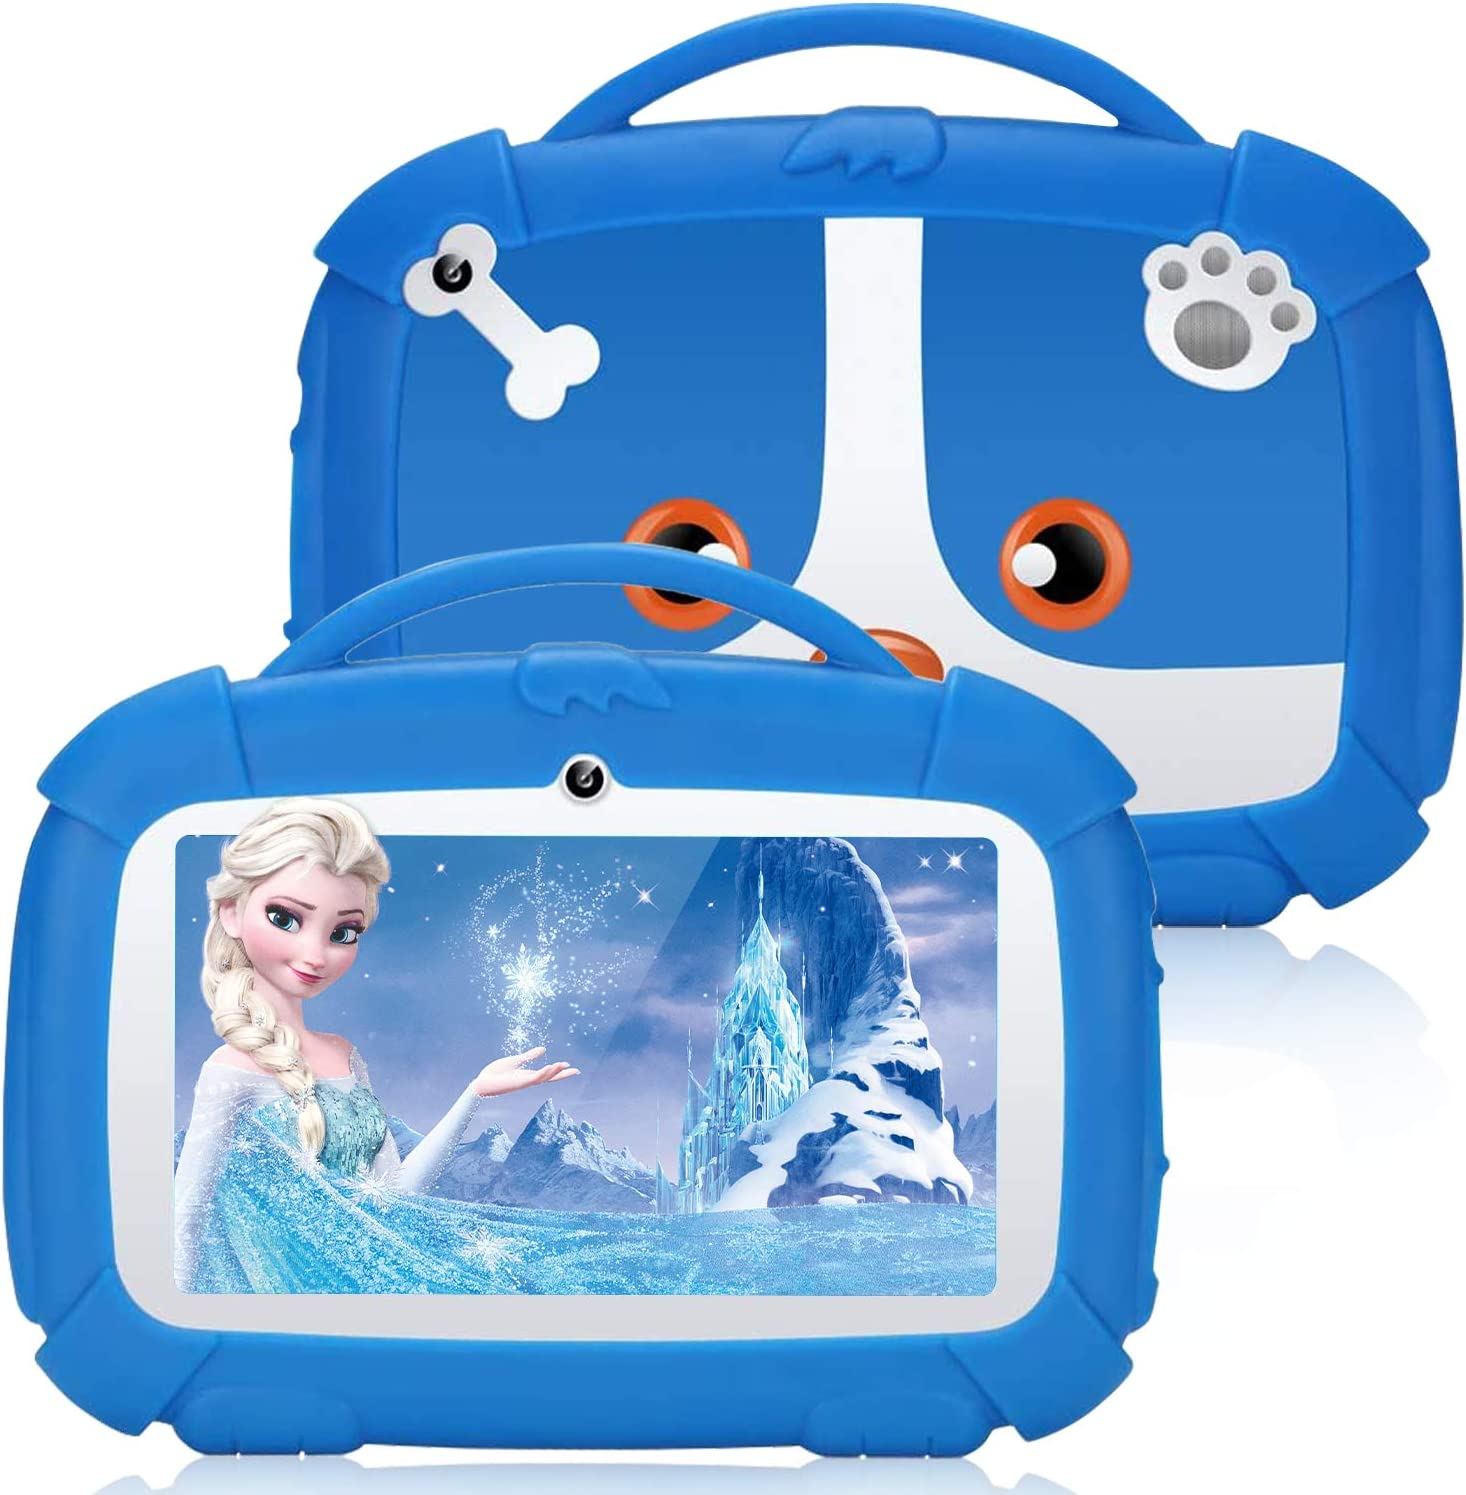 Kids Max 69% OFF Tablet 7 inch Android 9.0 Toddler Edition Al sold out. for